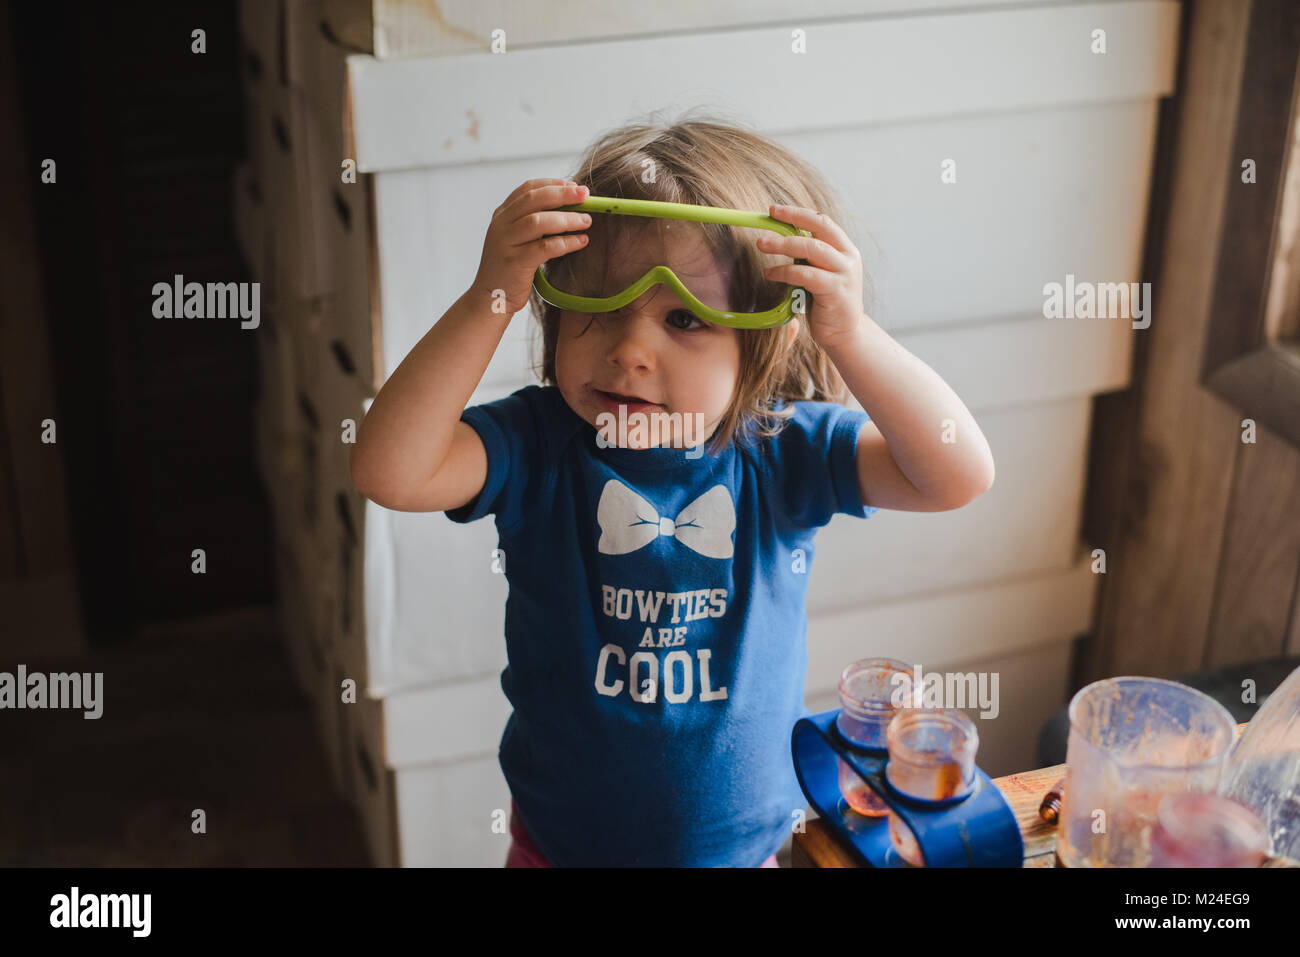 A 3-year old toddler girl works with science experiment equipment - Stock Image